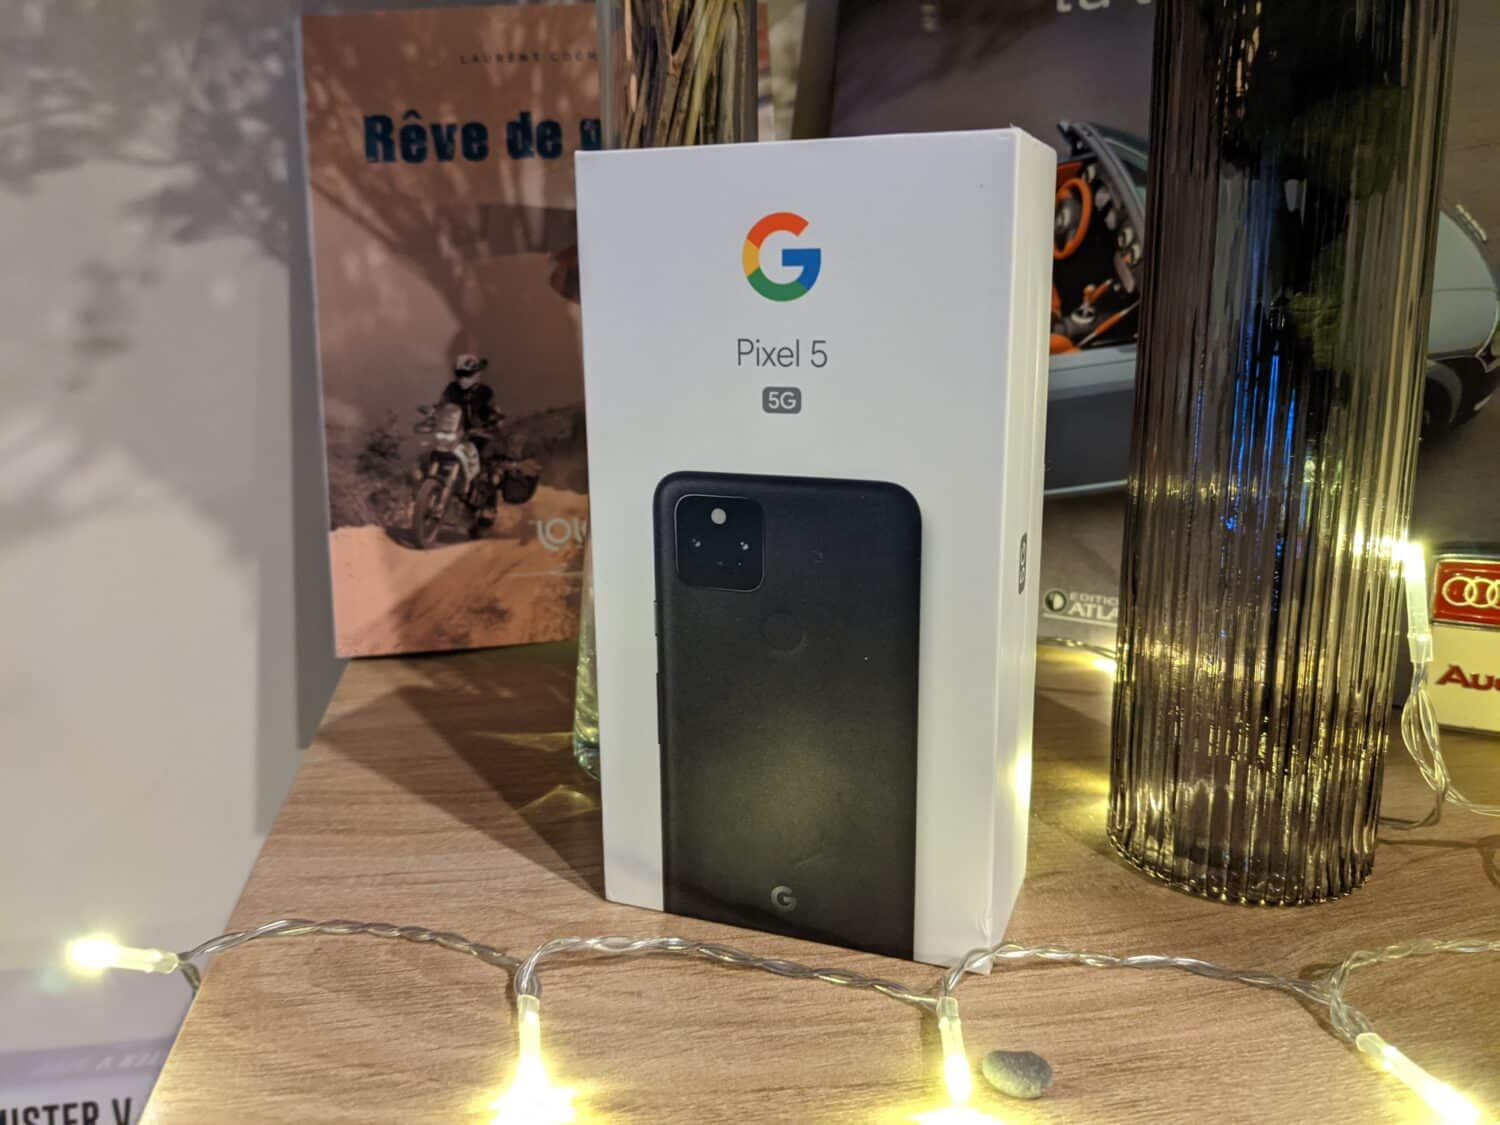 Google Pixel 5 - Packaging